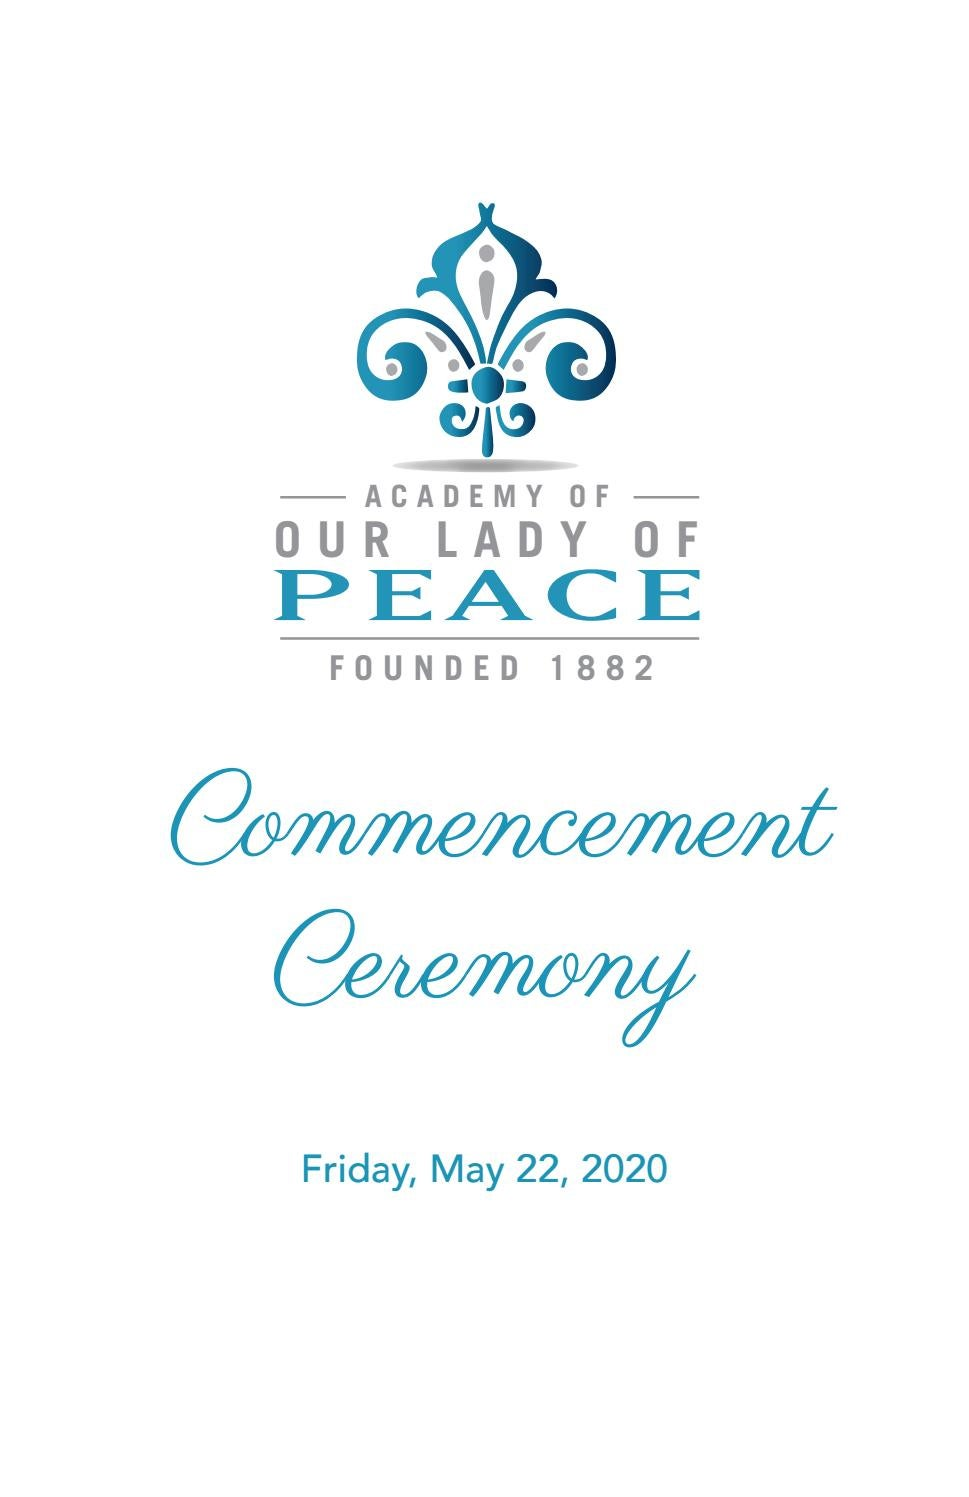 class of 2020 commencement program by academy of our lady of peace issuu class of 2020 commencement program by